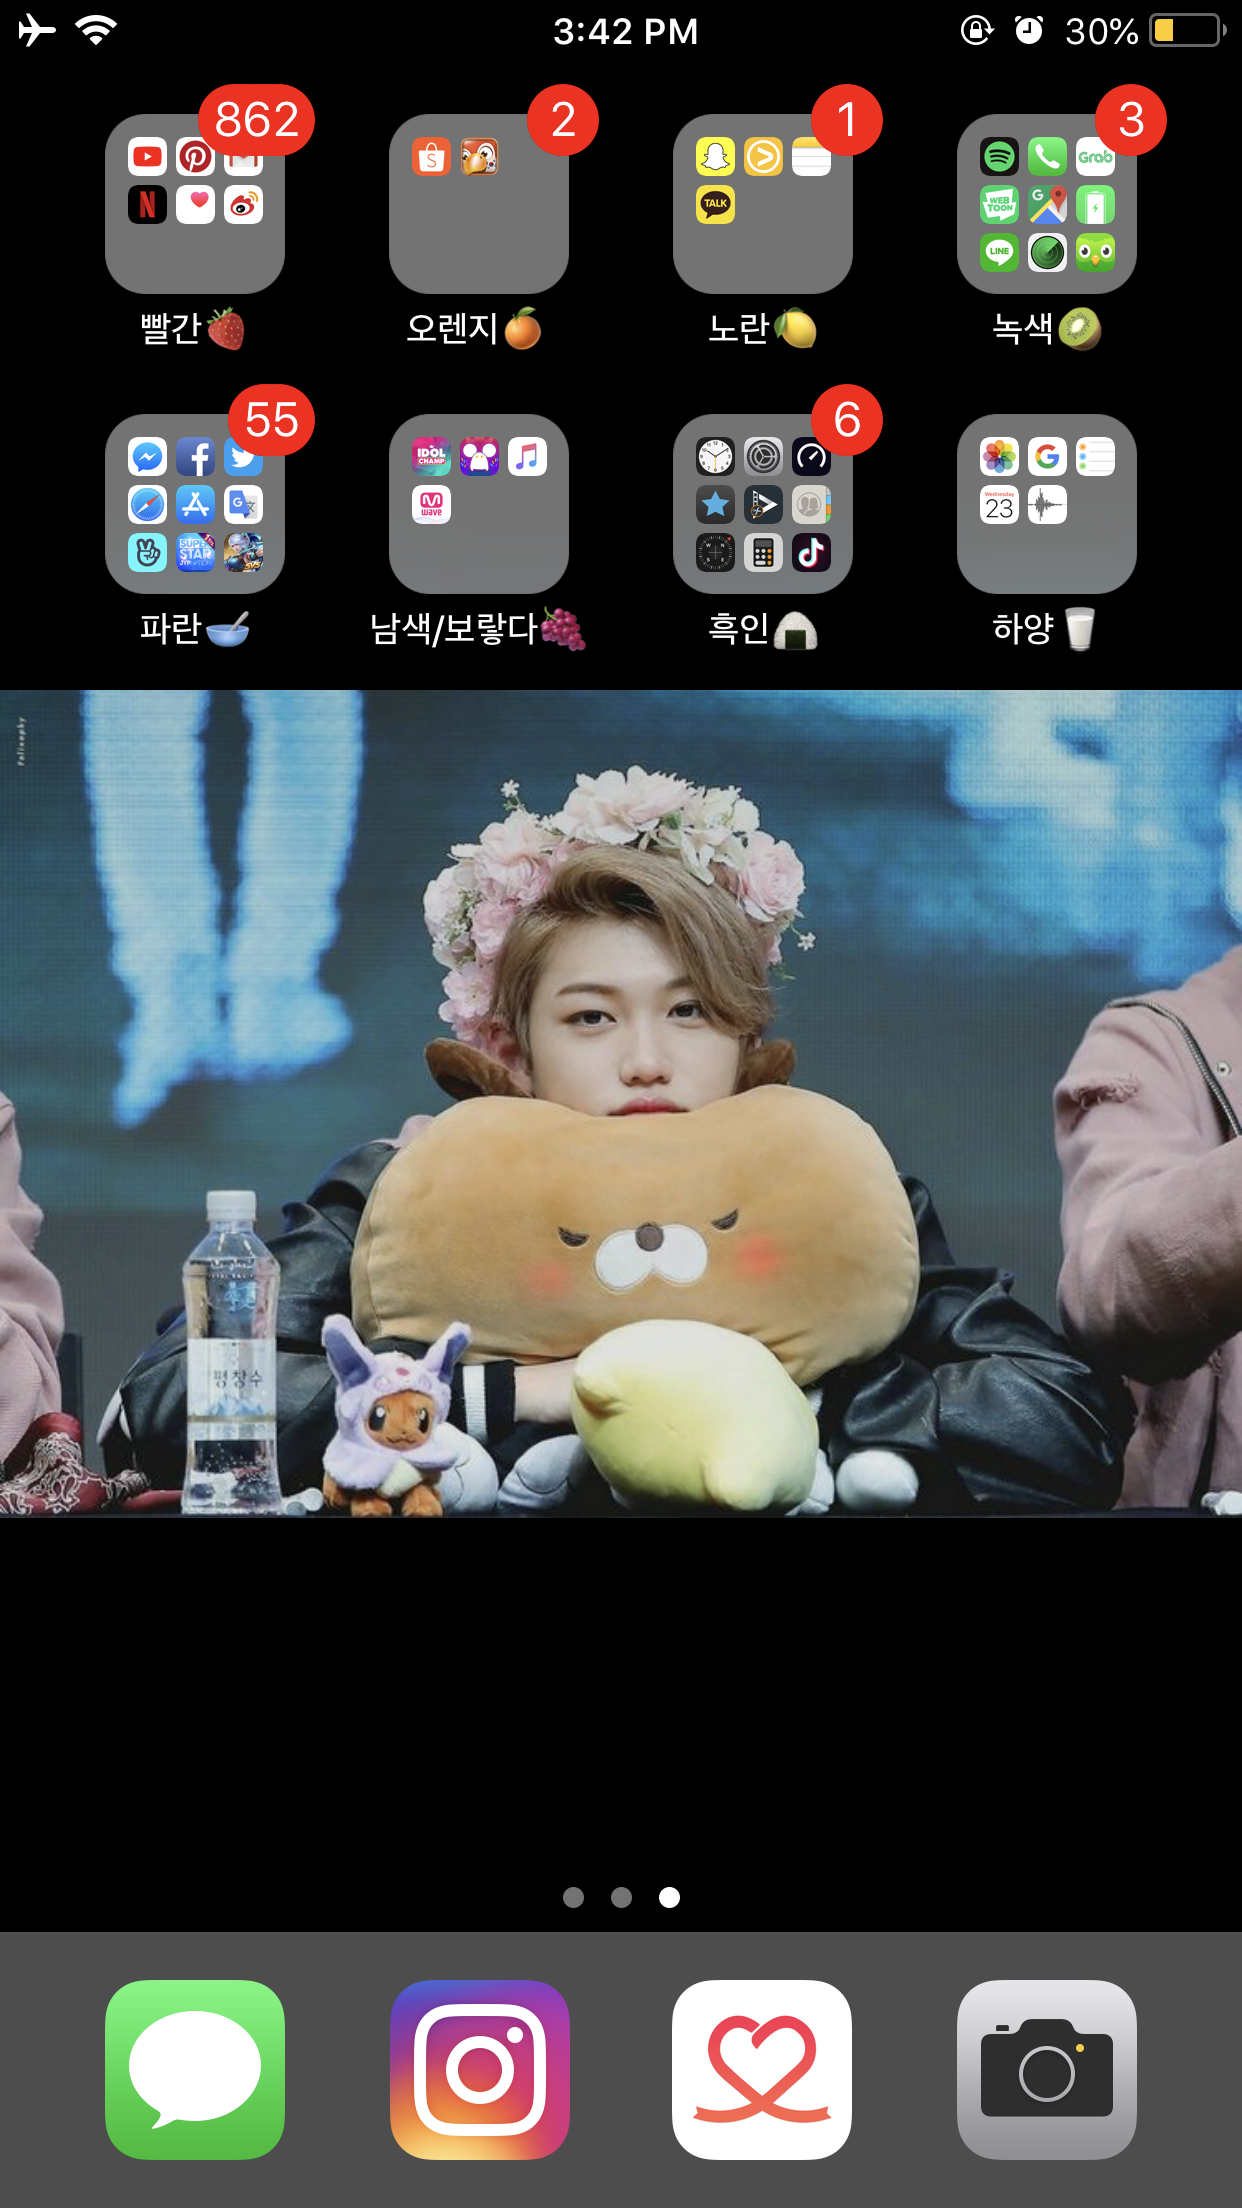 Color Coding Your Apps And Labelling Them In Korean Folders Is Such A Neat Way Of Being A K Pop Trash Kpo Iphone Layout Iphone Organization Organization Apps